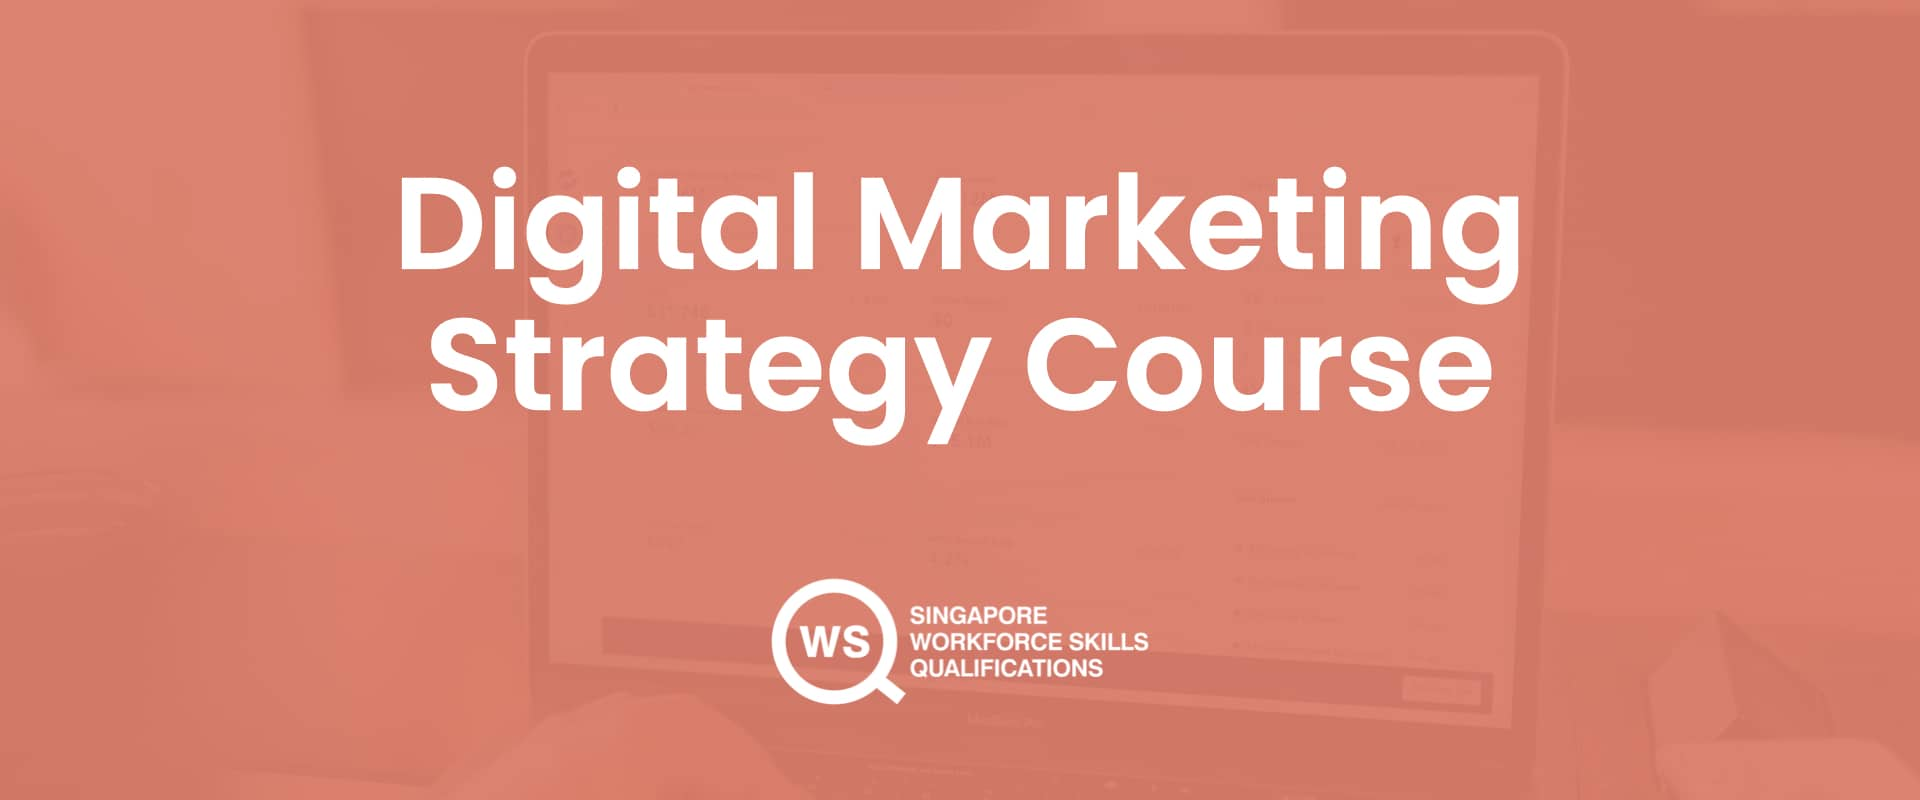 digital-marketing-strategy-course-cover